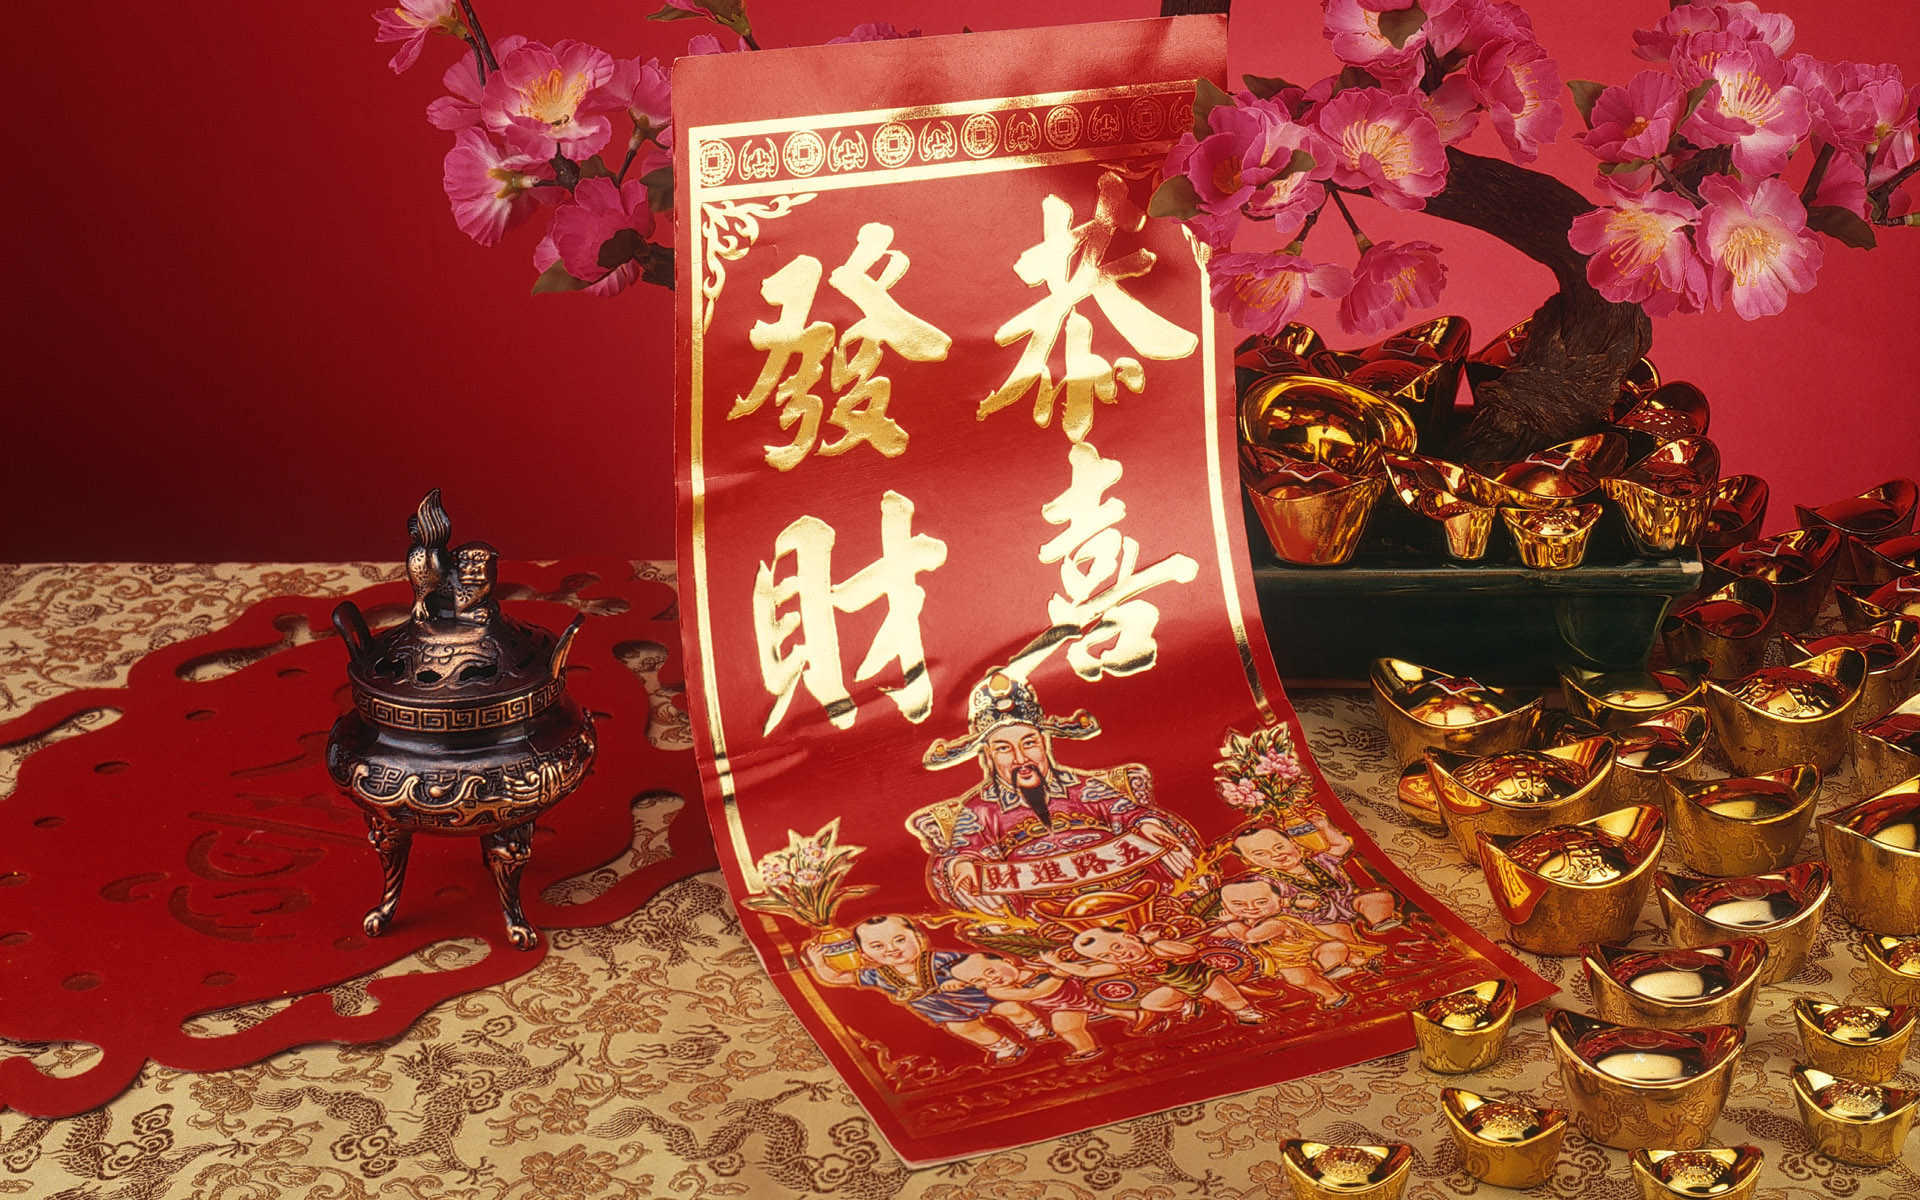 Wallpaper Chinese new year widewcreen - Chinese new year widewcreen